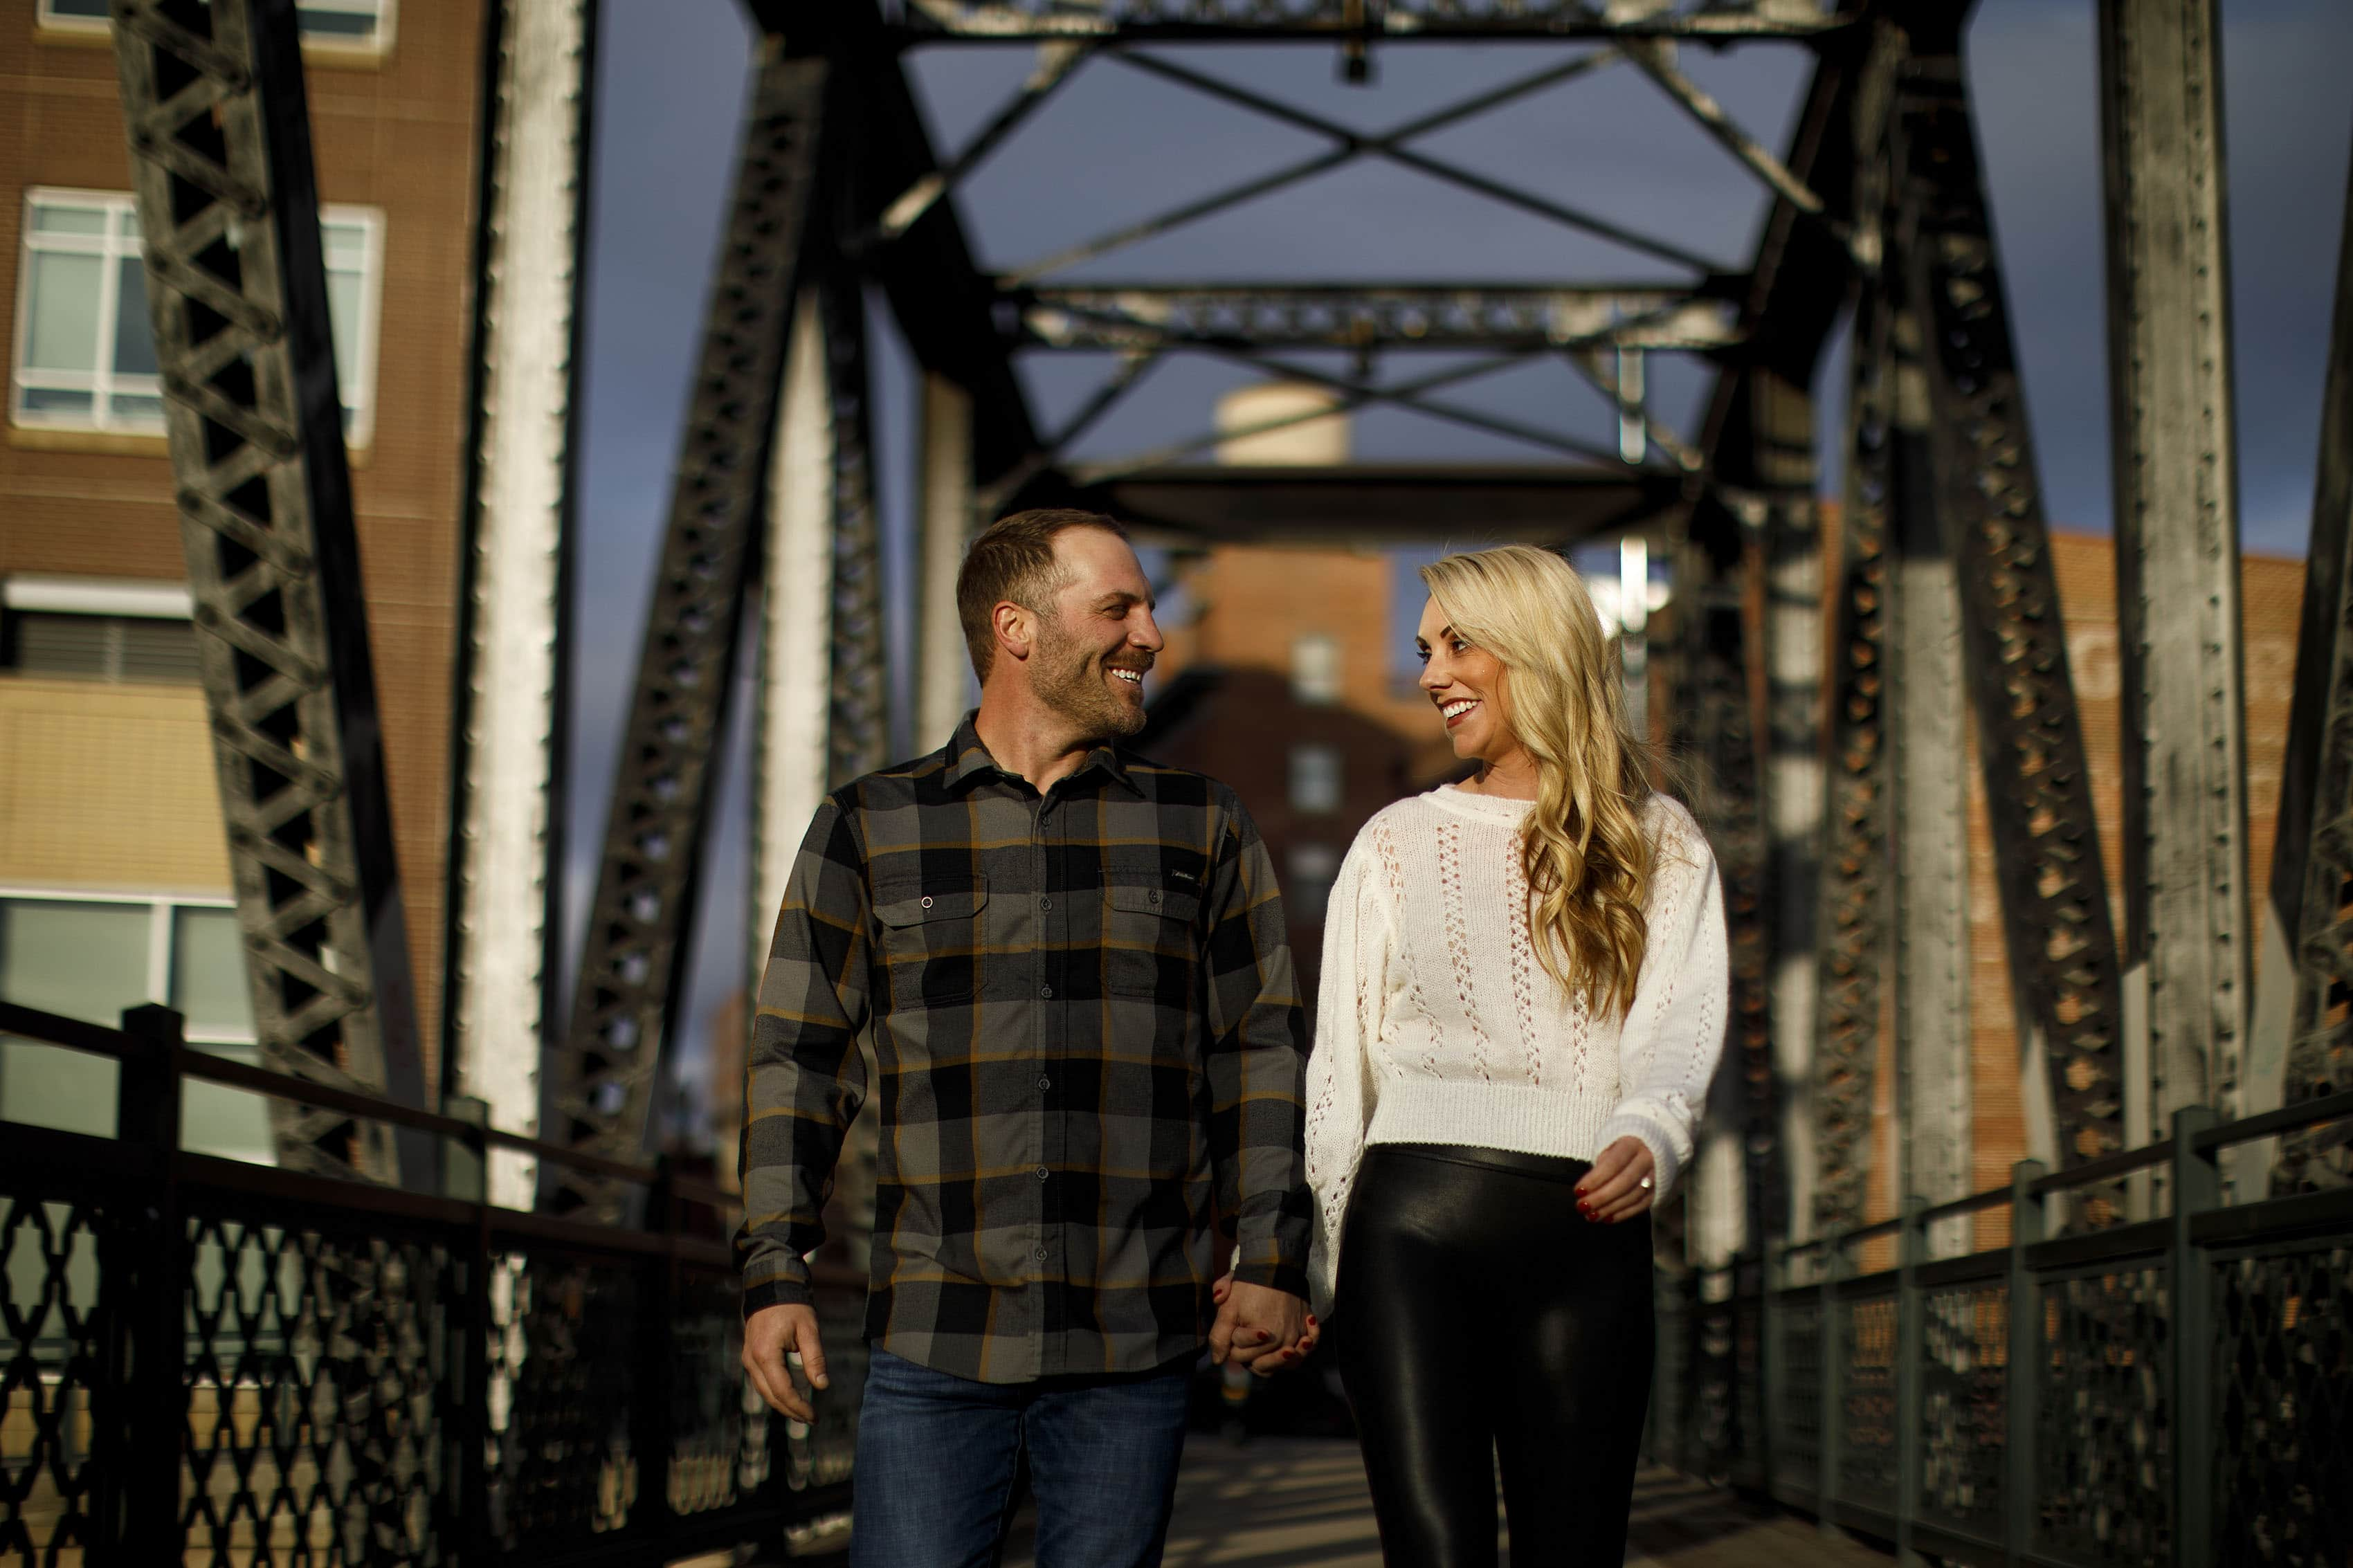 Joe and Mesha smile while walking together on the Wynkoop Street Bridge during their Denver engagement session